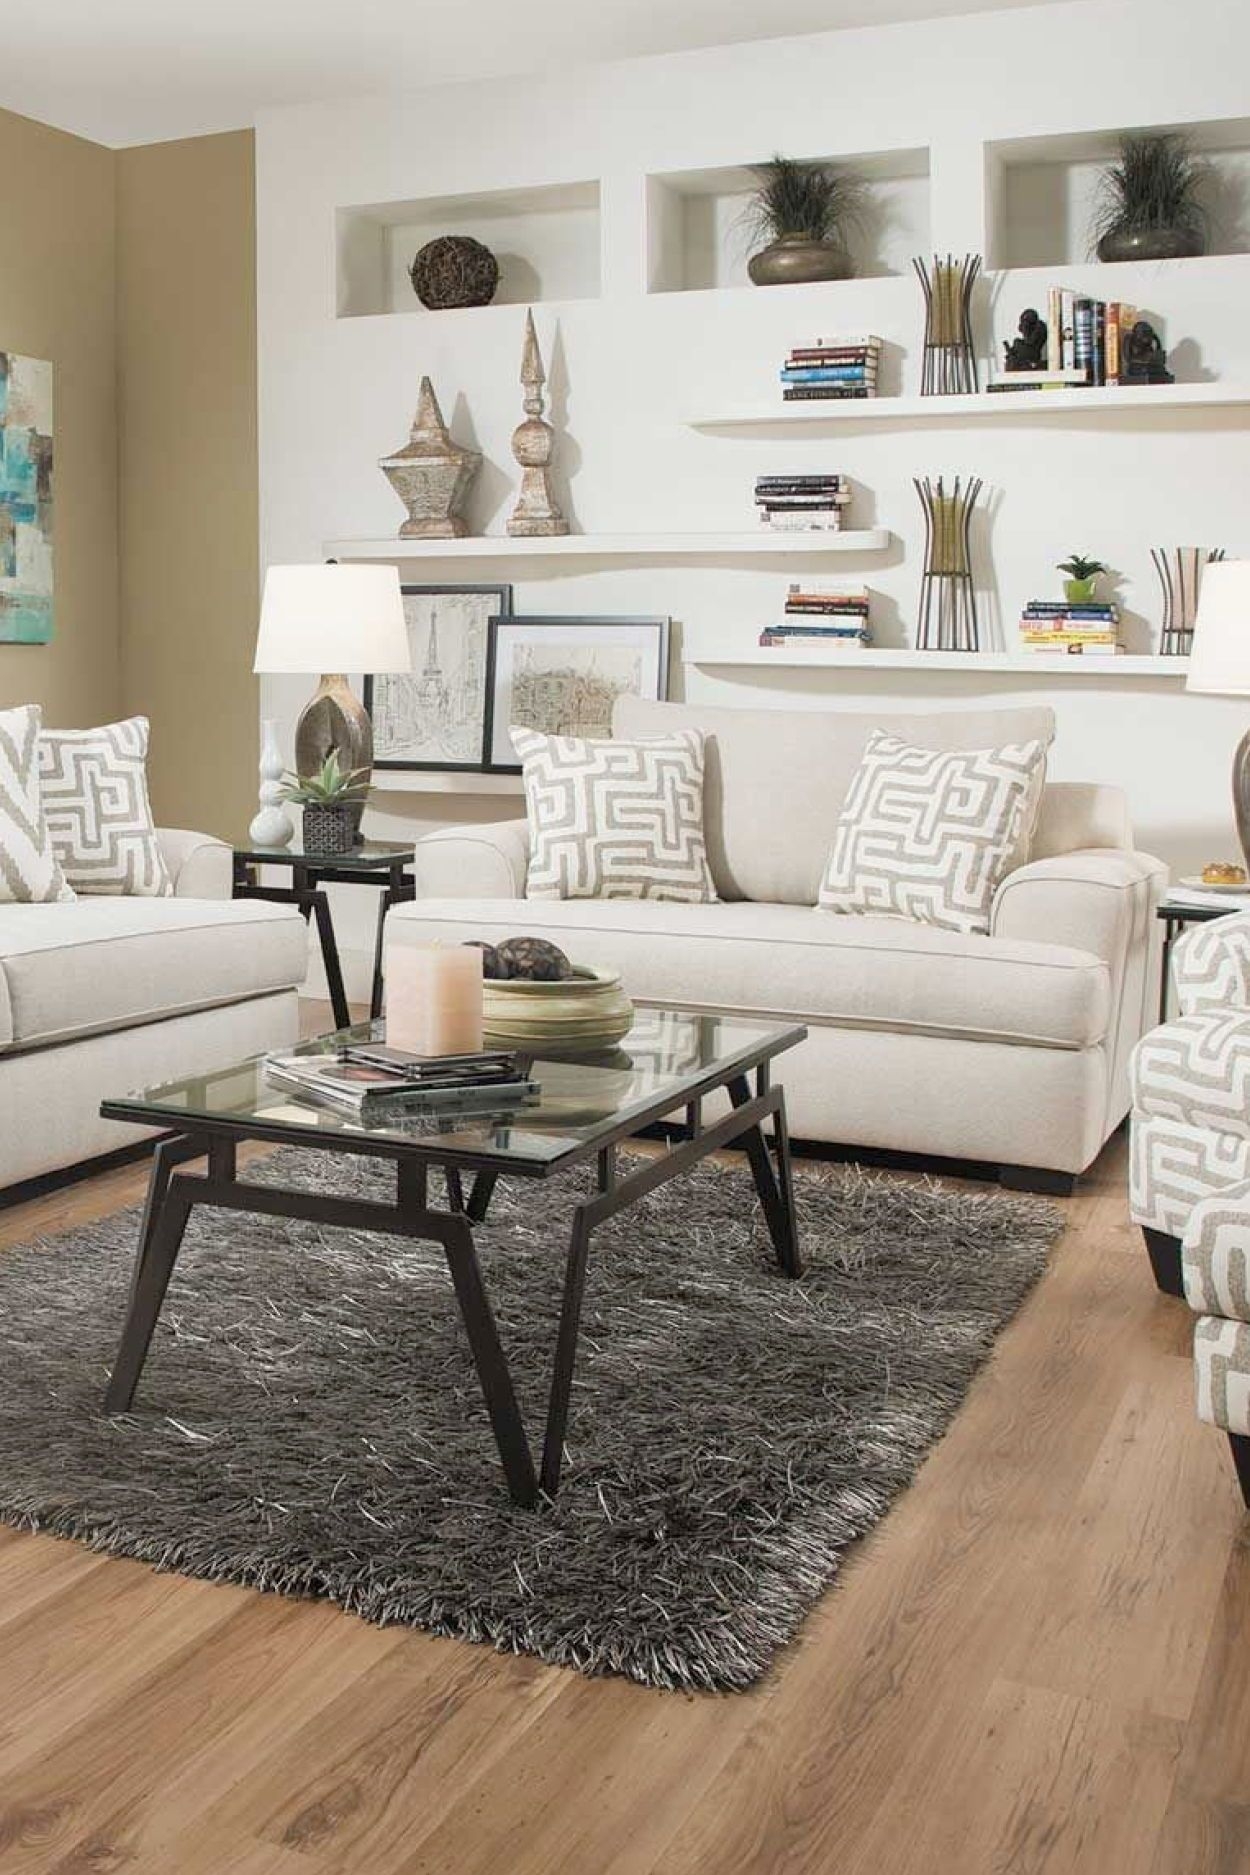 oatmeal sofa where can i donate my sleeper mallory living room decor with its generous scale and balanced look this collection sets the tone for plenty of style comfort